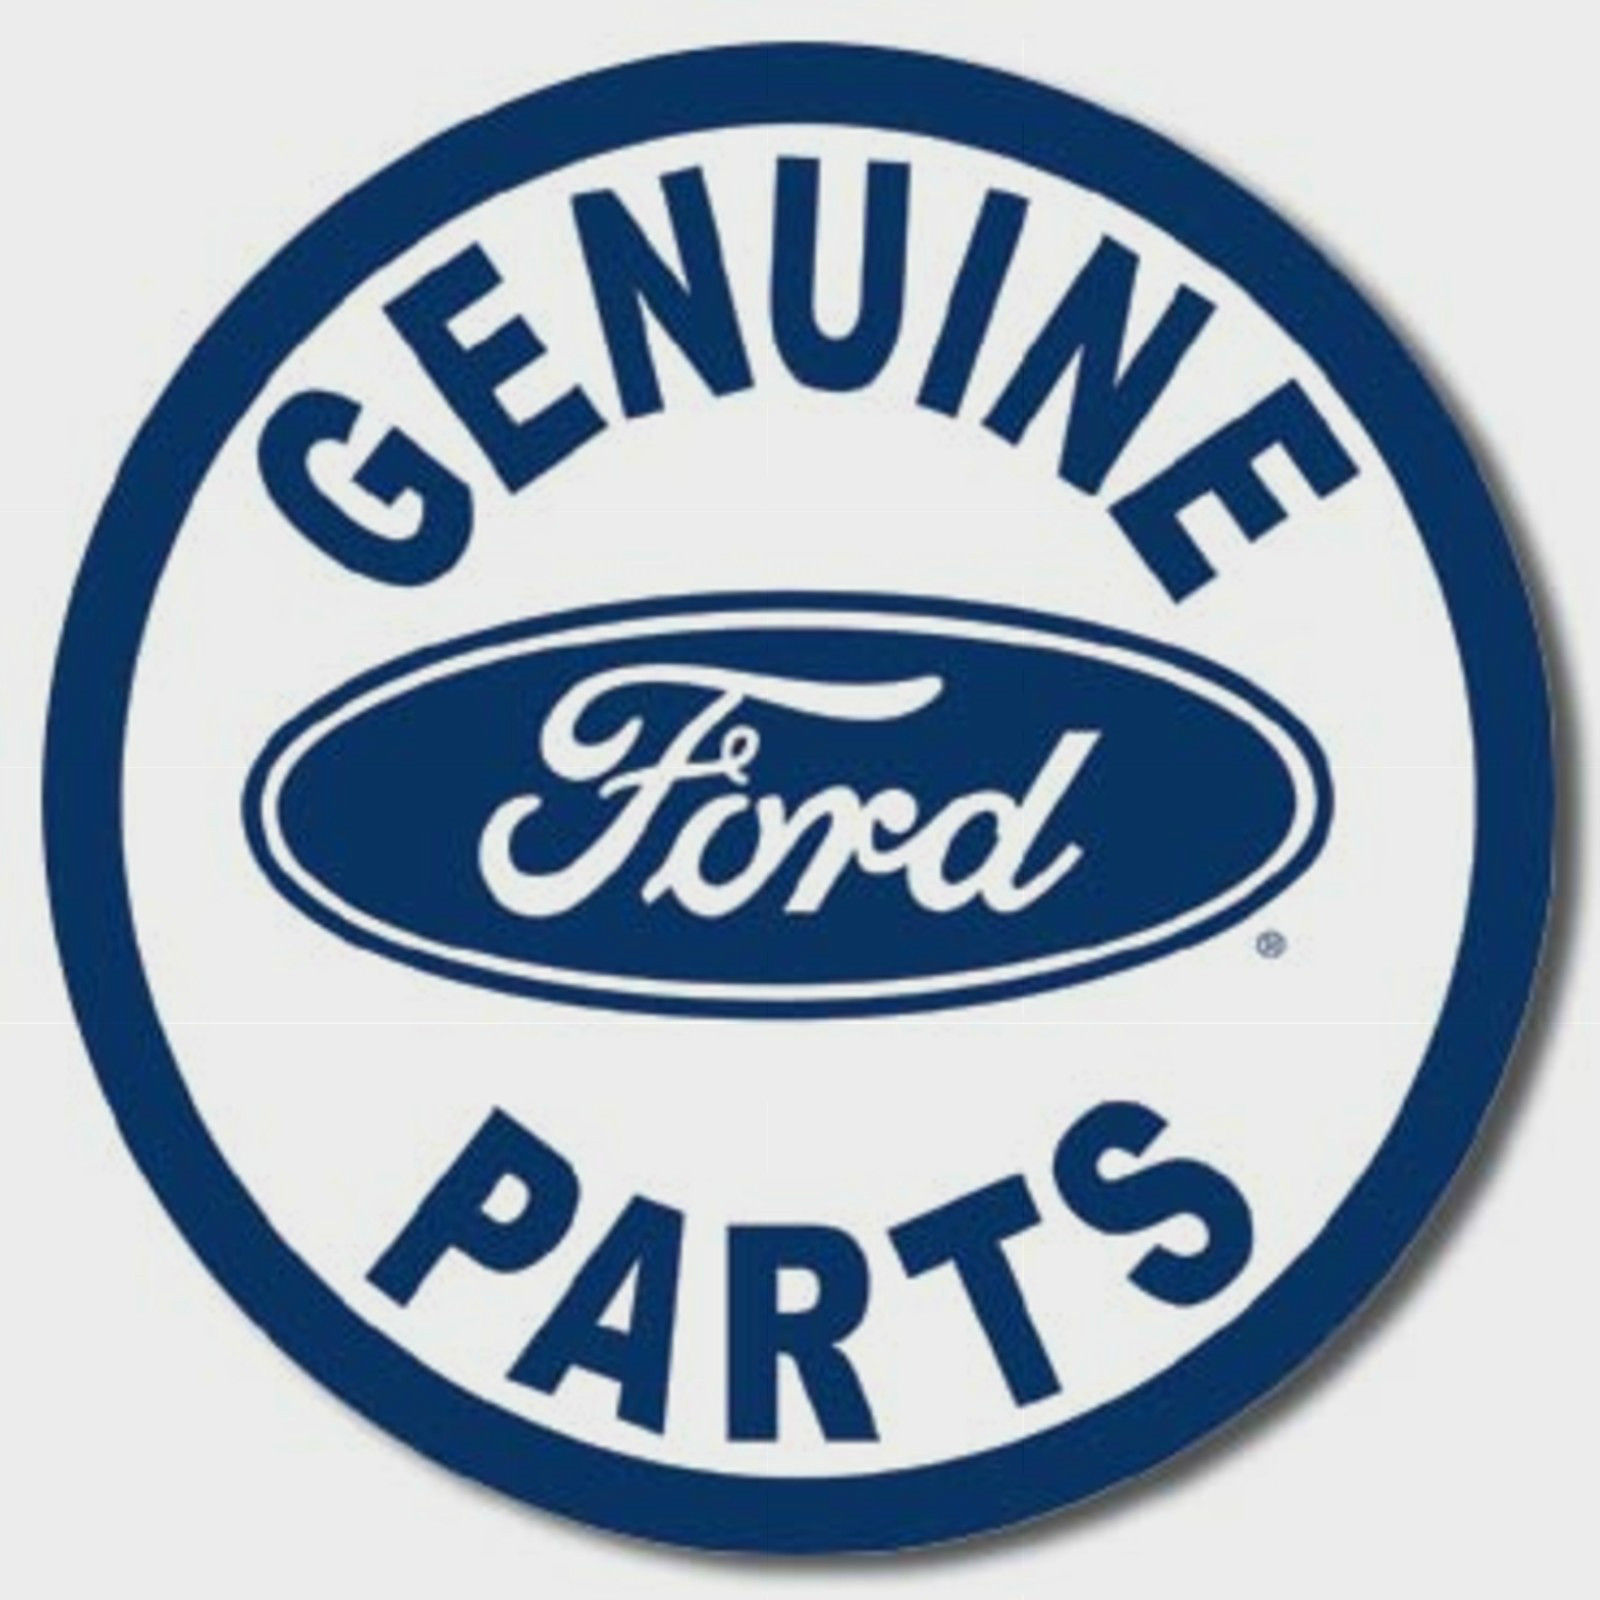 Ford Genuine Parts Motor Car Truck  Metal Sign Tin New Vintage Style USA #791